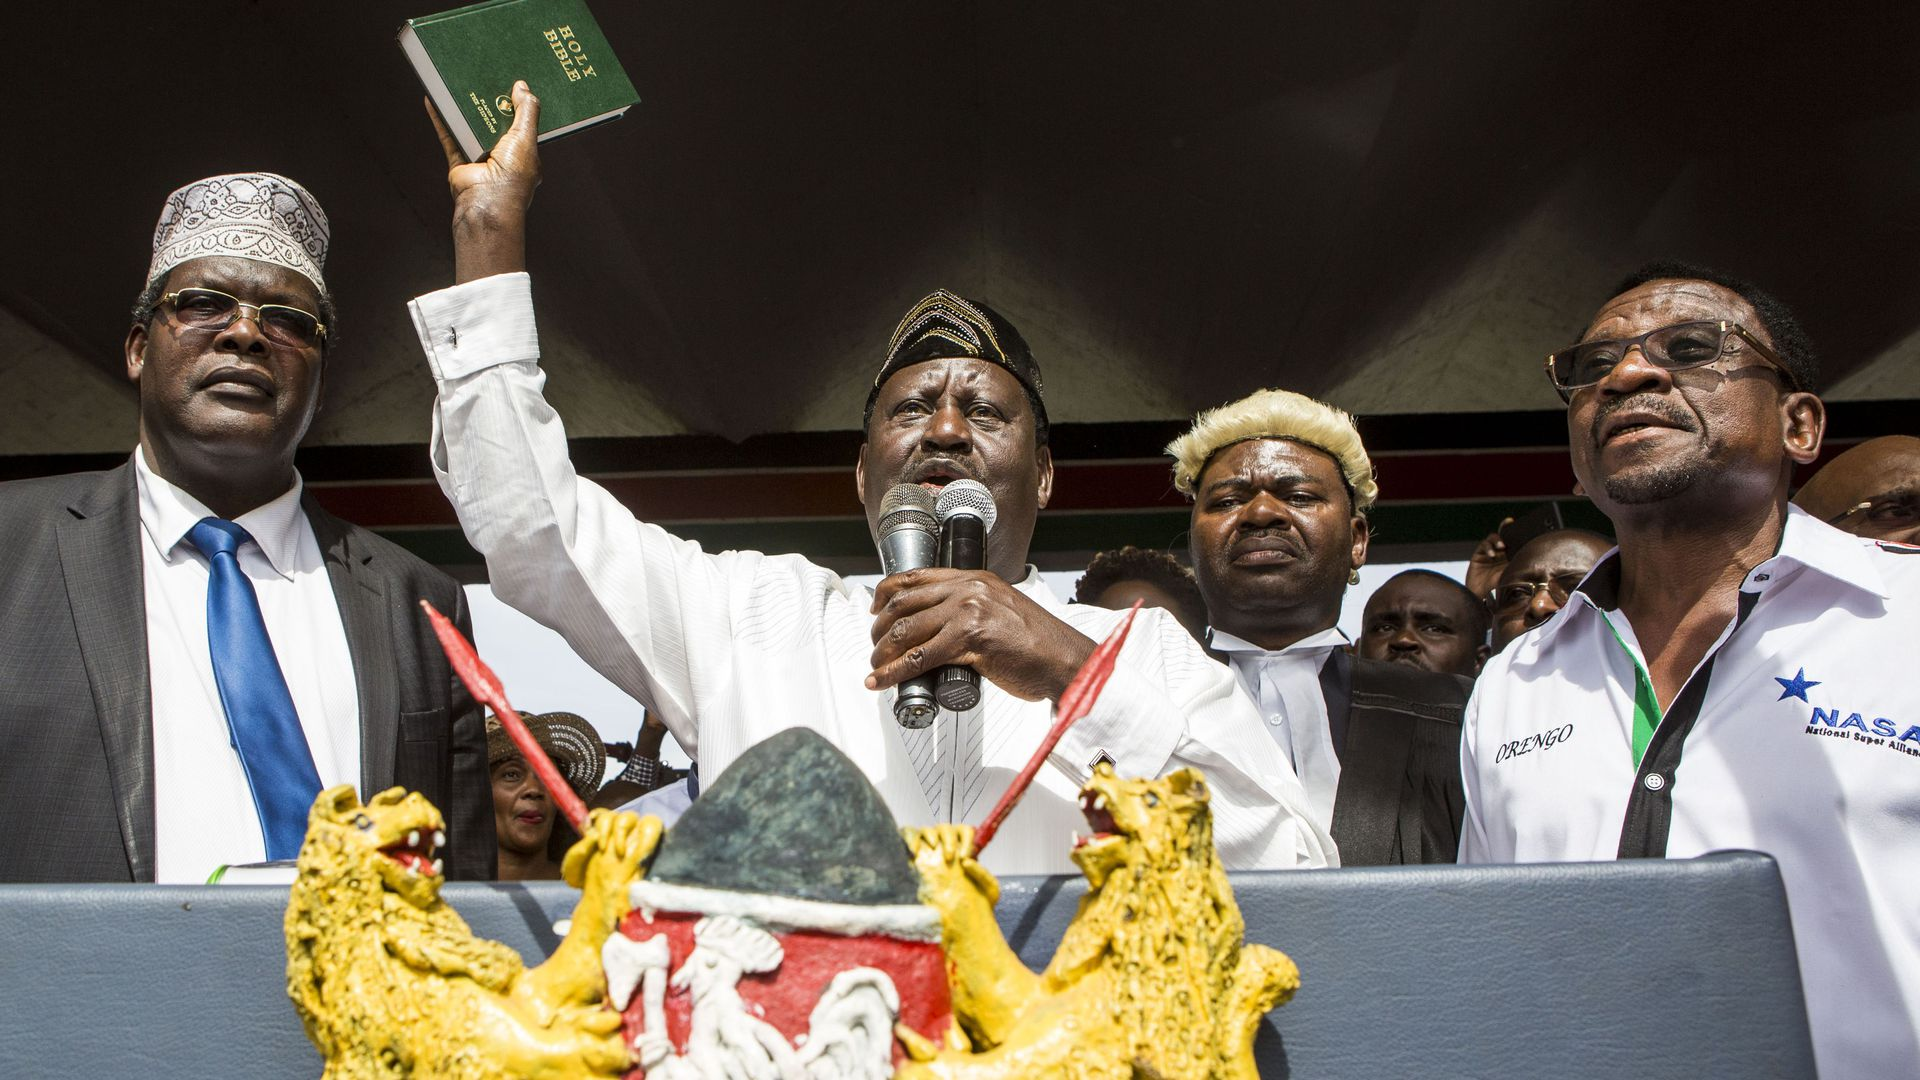 Odinga with Bible raised while speaking at lectern